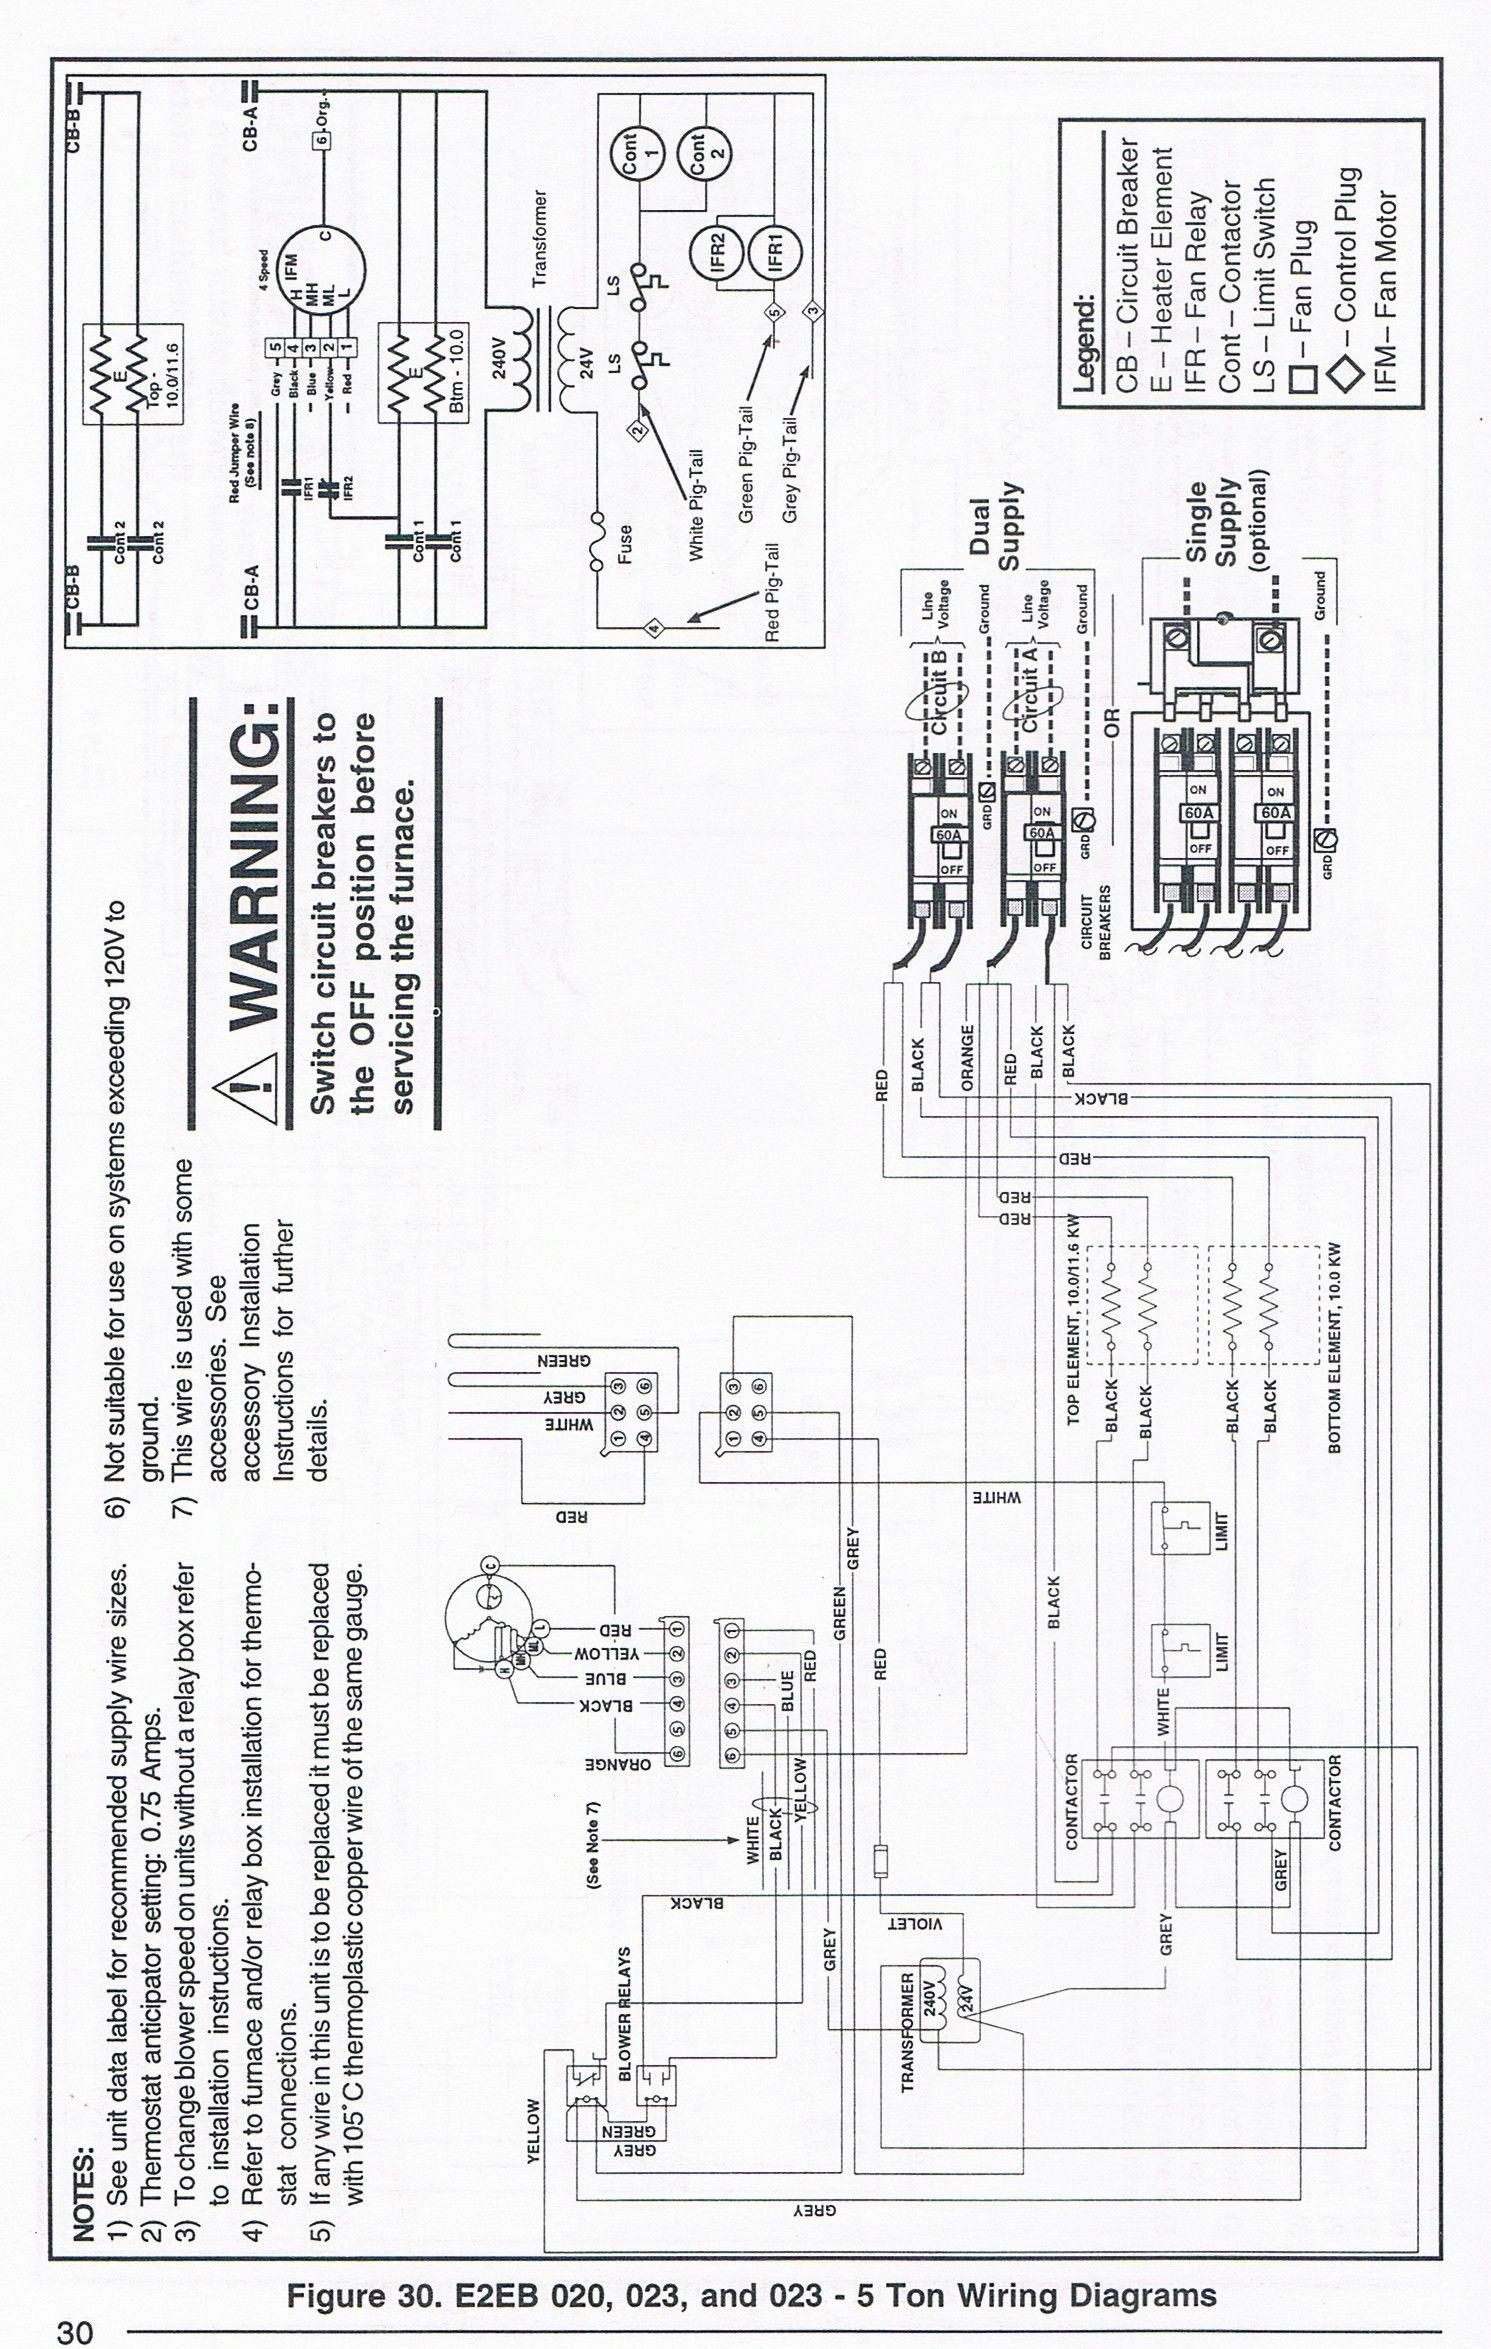 Nordyne Hvac Wiring Diagrams Schematics In Furnace Diagram In E2eb 015ha Wiring Diagram Electric Furnace Gas Furnace Westinghouse Electric